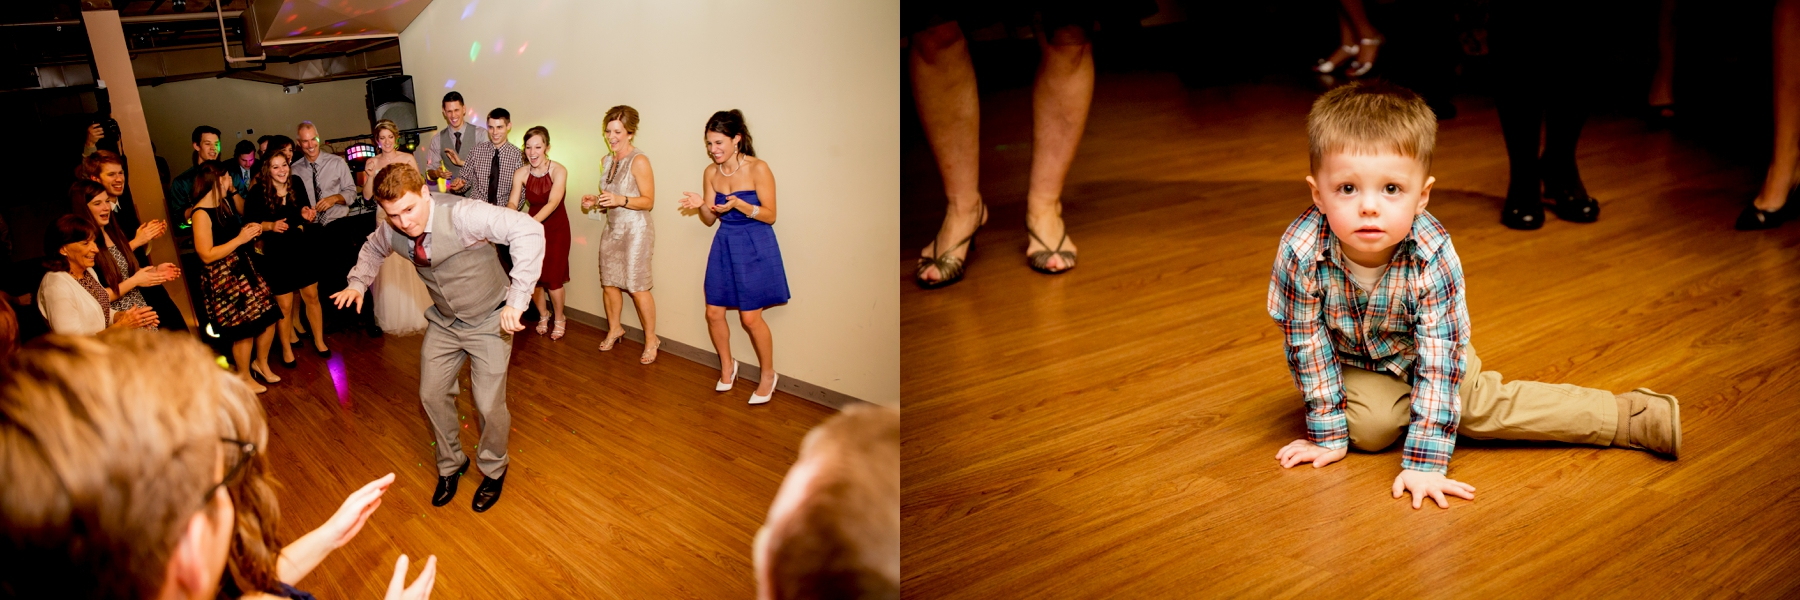 Brandon_Shafer_Photography_Kristen_Corey_Downtown_Grand_Rapids_Fall_Wedding0049.JPG